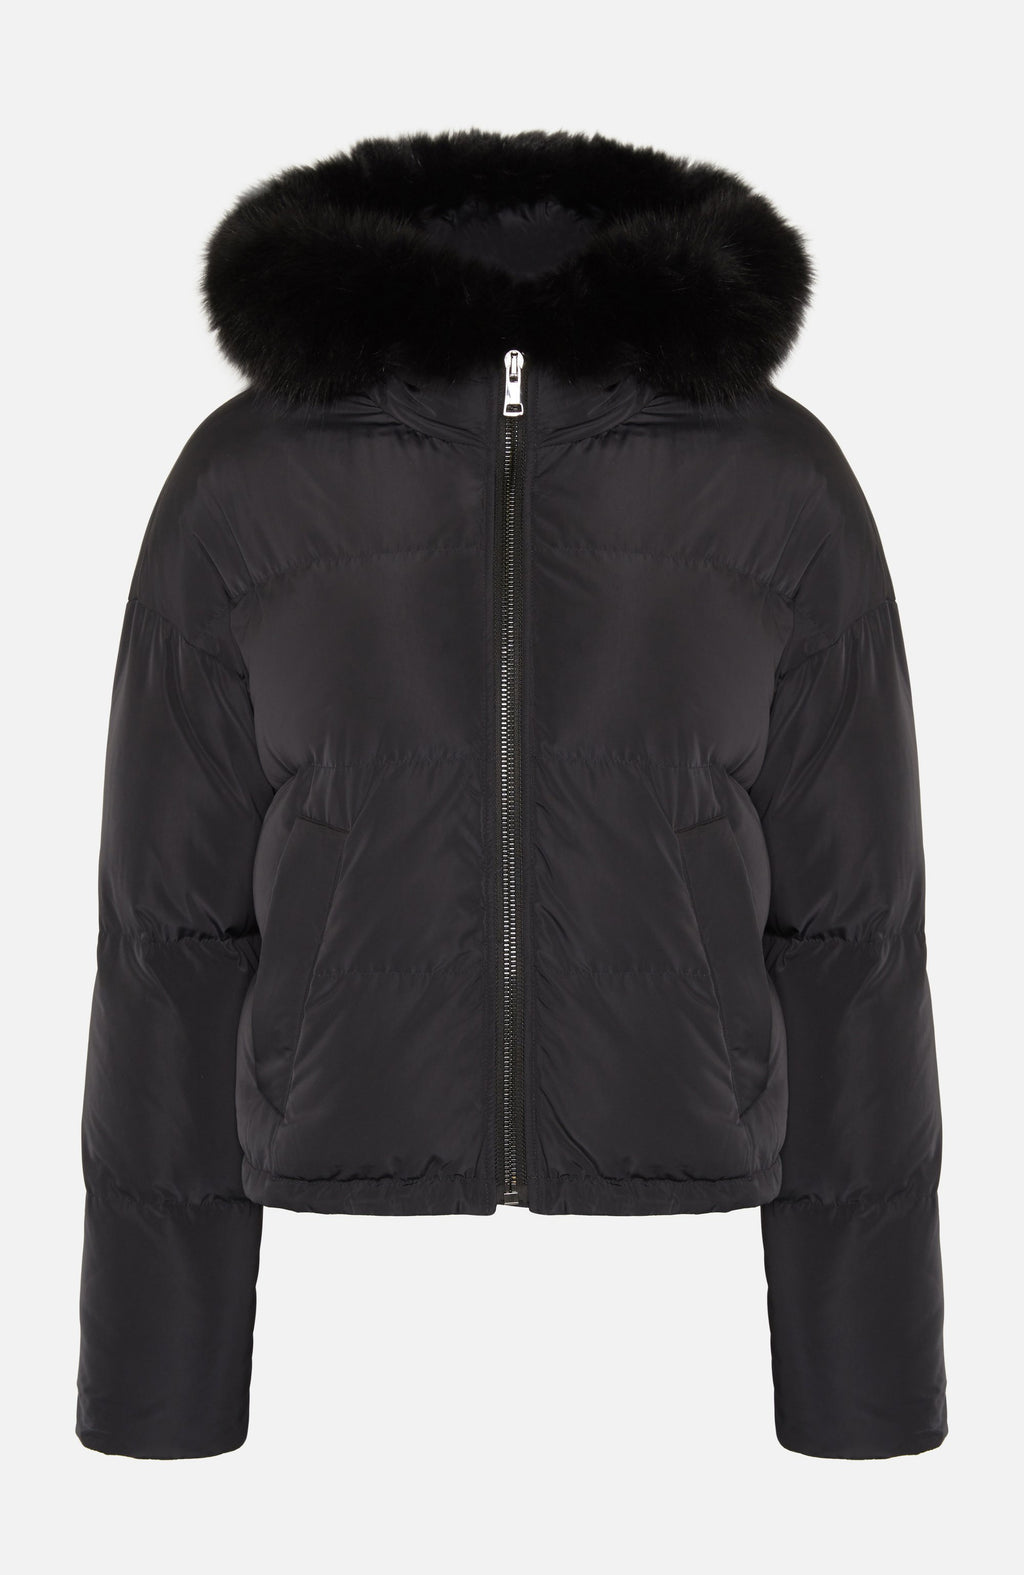 Lou Andrea Short Fur Trim Black Puffer